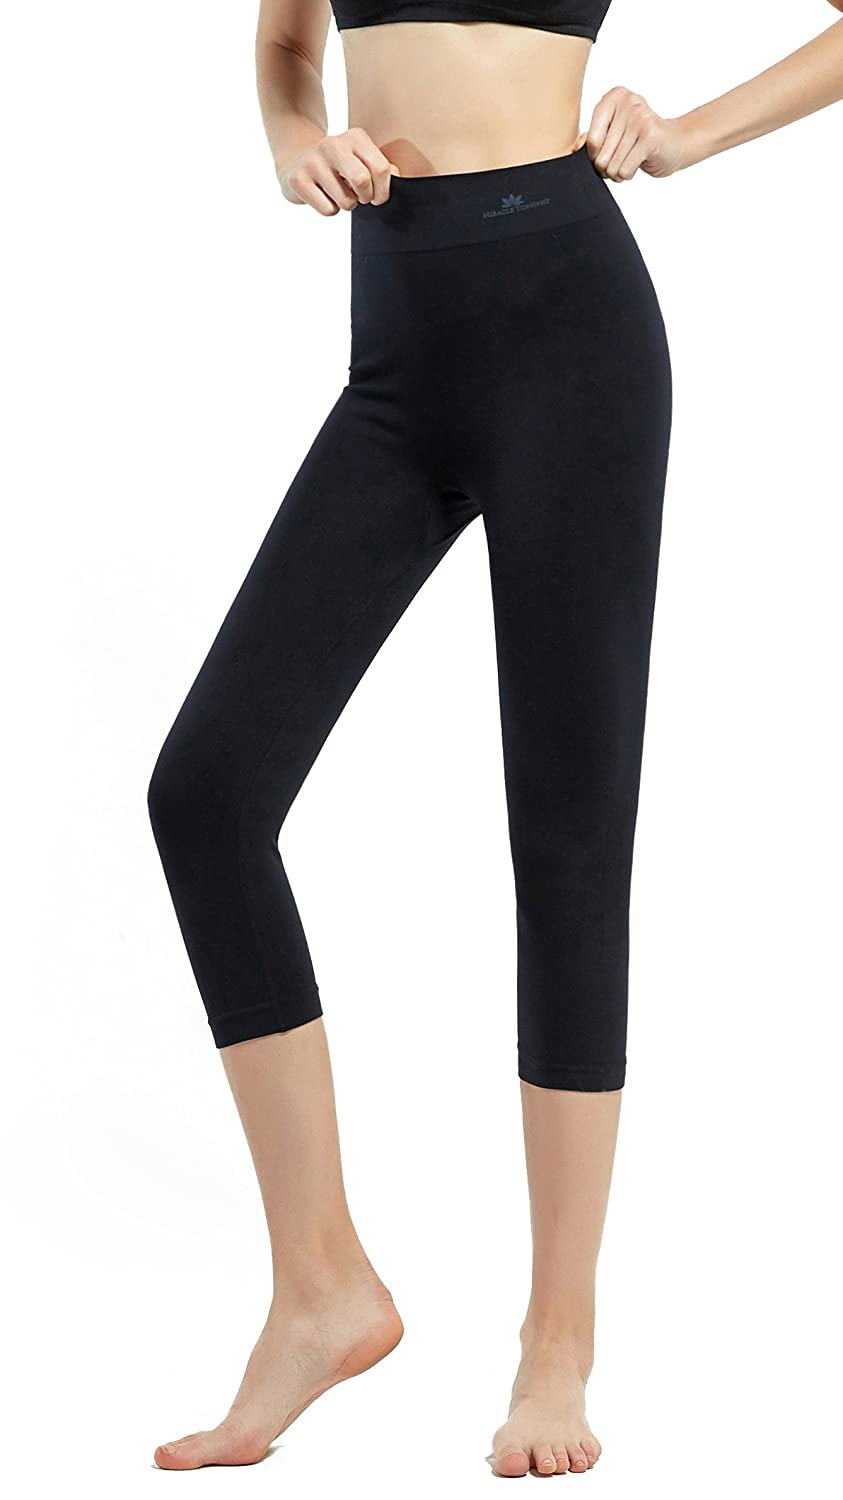 58735553283af4 Amazon.com: SKINEEZ Skincarewear Women's Capri Leggings High Waist Yoga  Capri Pants Cropped Workout Leggings: Clothing